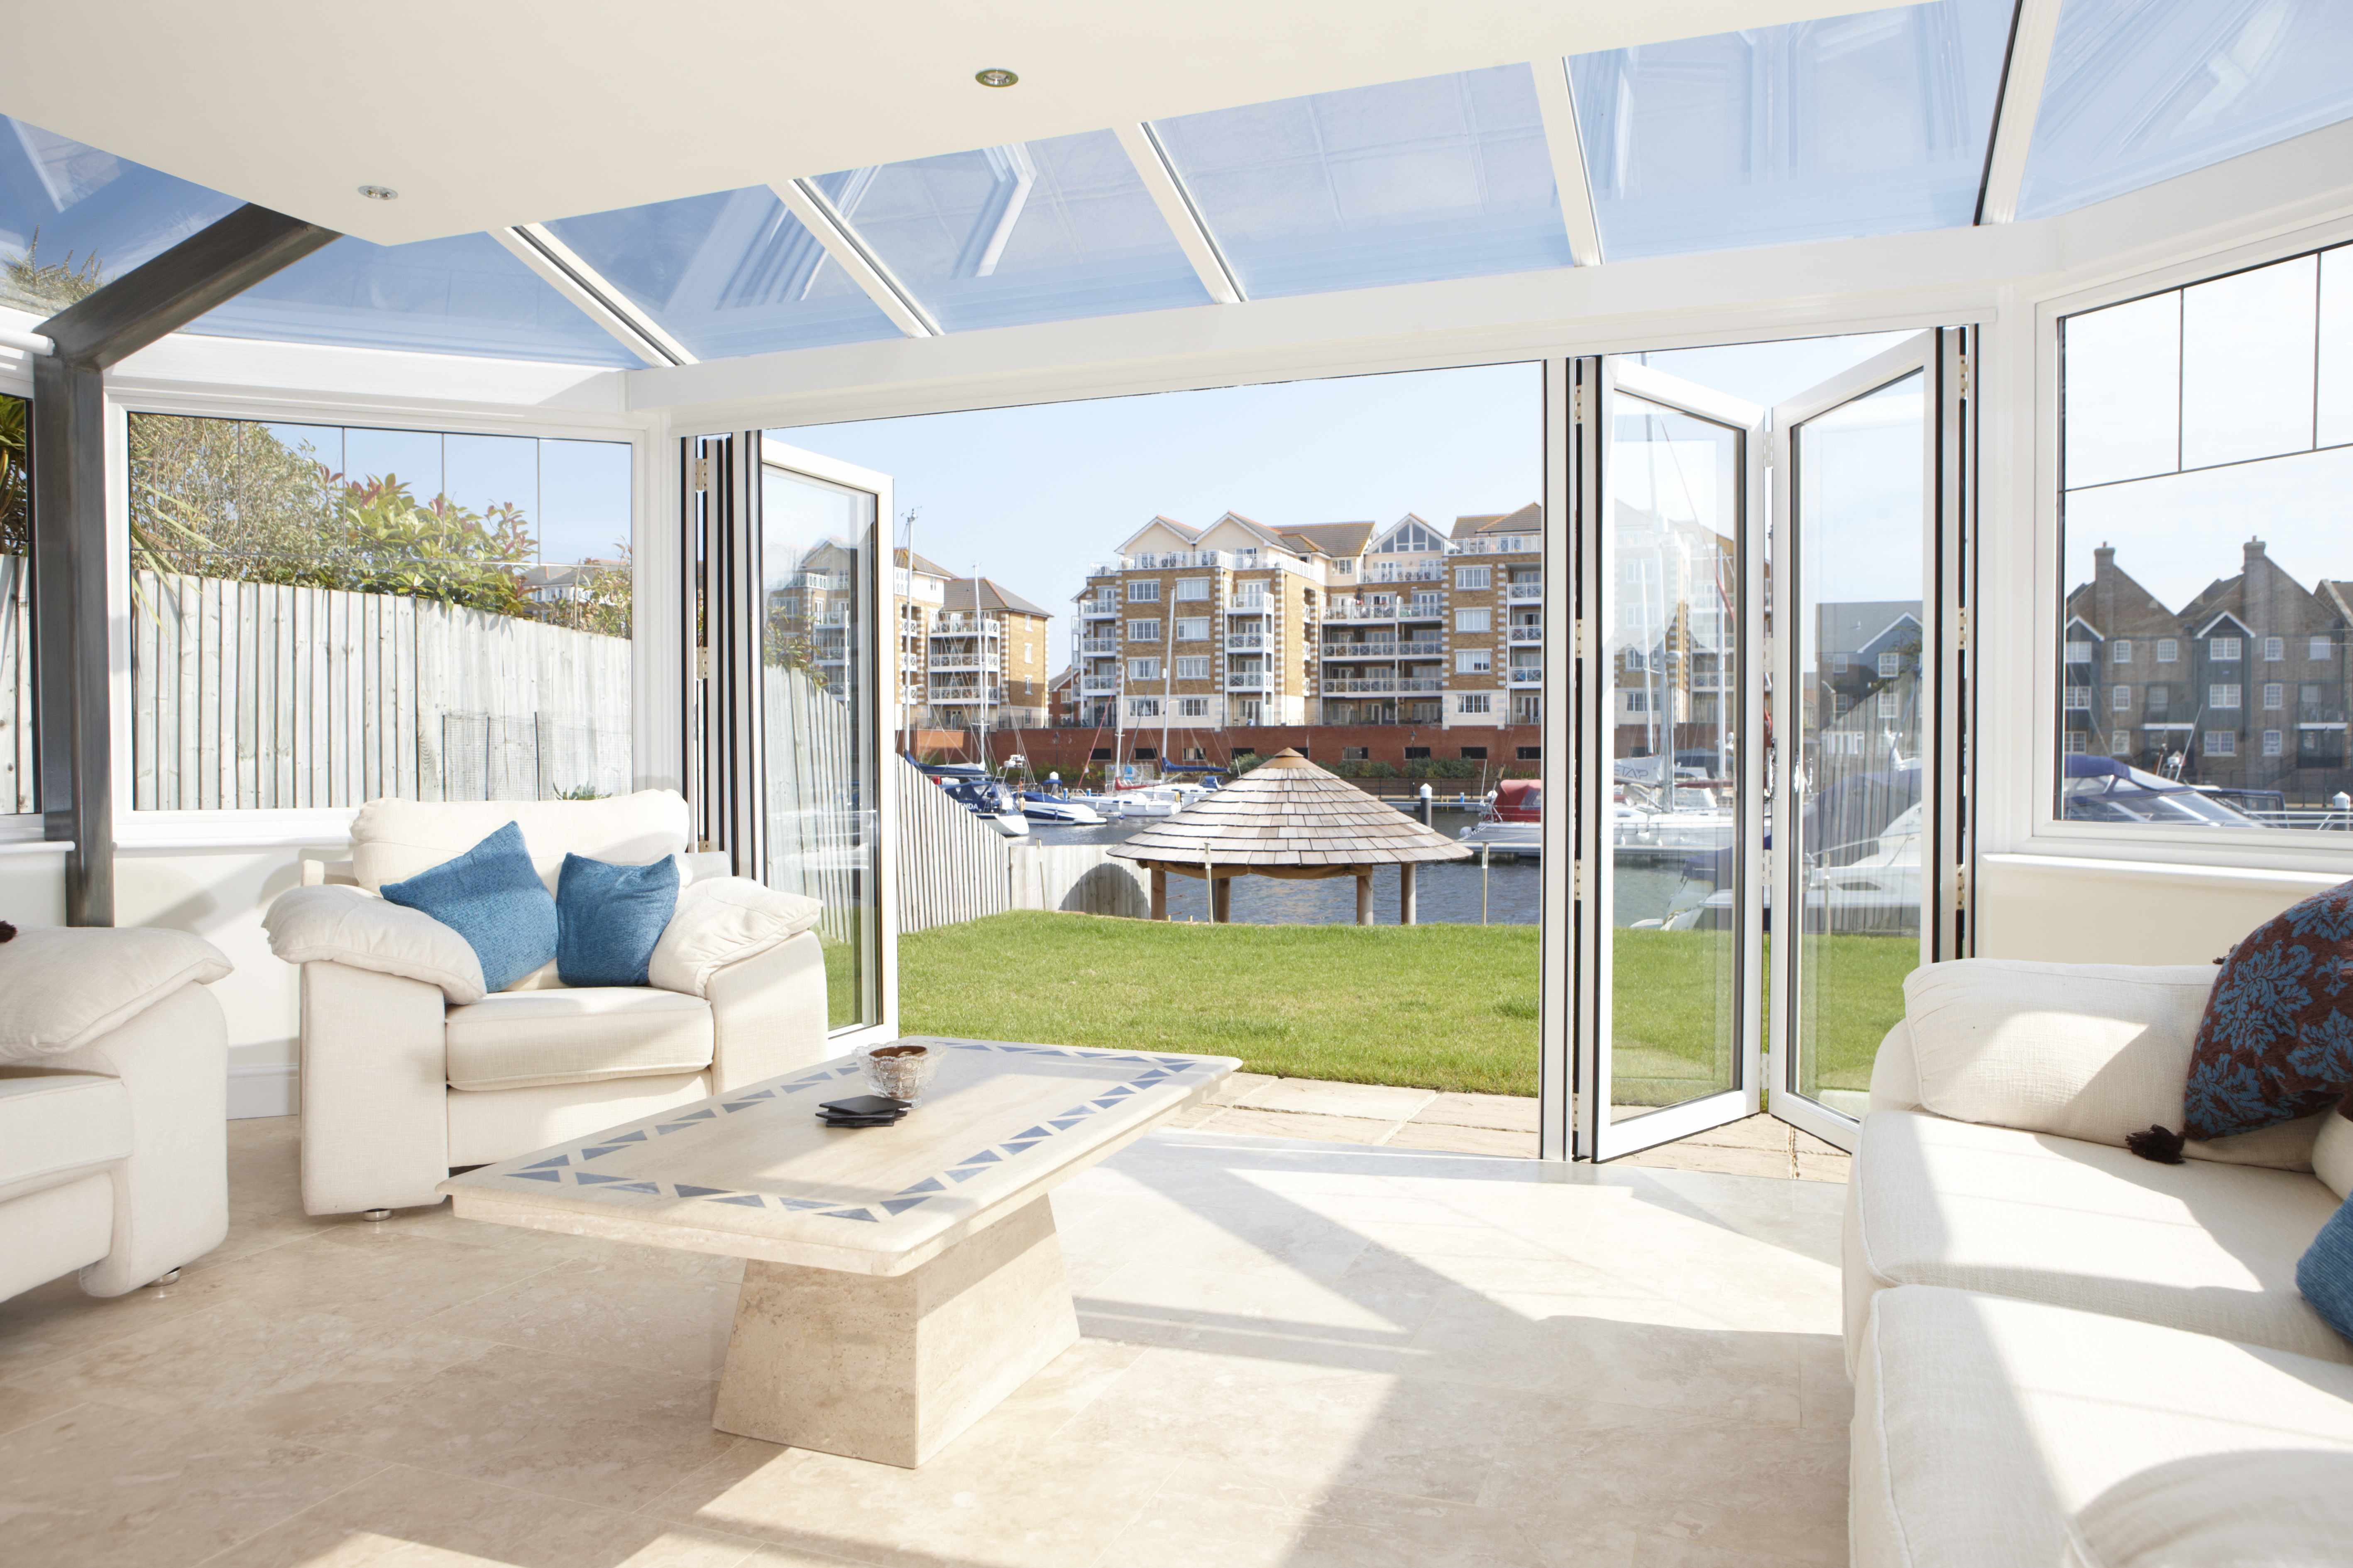 A Conservatory Is A Cost Effective And Enjoyable Way To Add Light And Space  To Your Home.